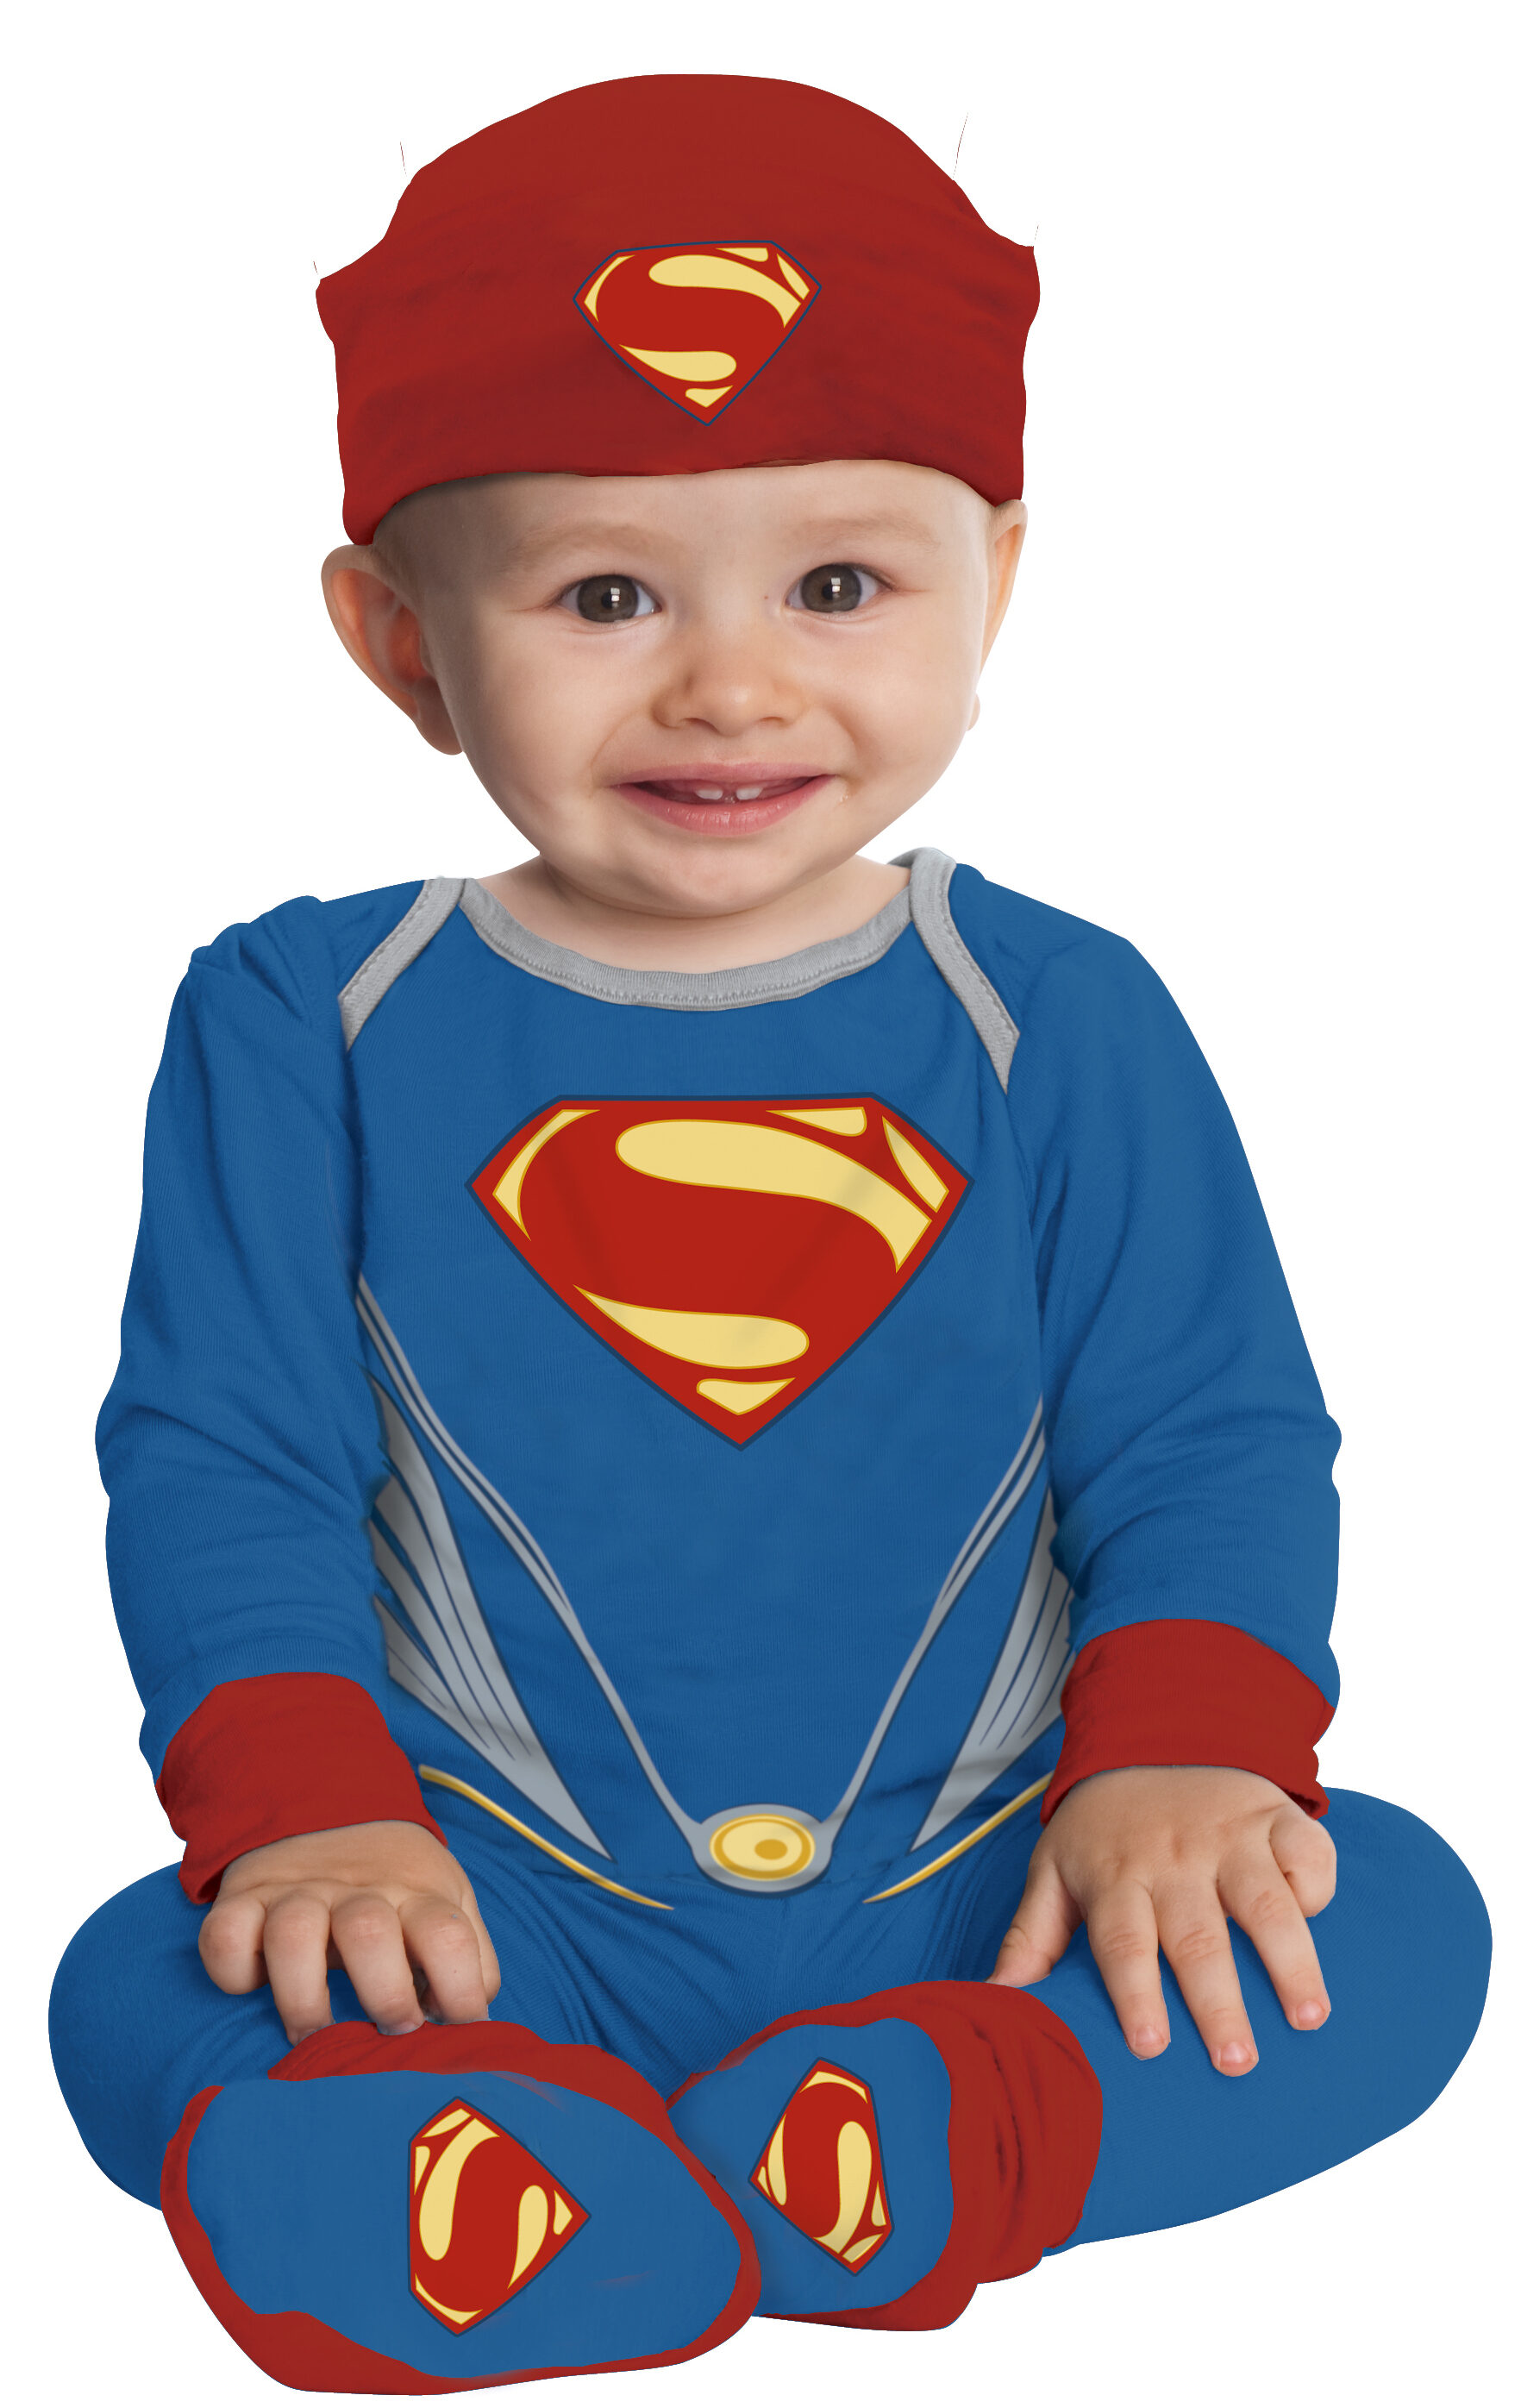 sc 1 st  Mr. Costumes & Boys Deluxe Superman Baby Costume - Mr. Costumes